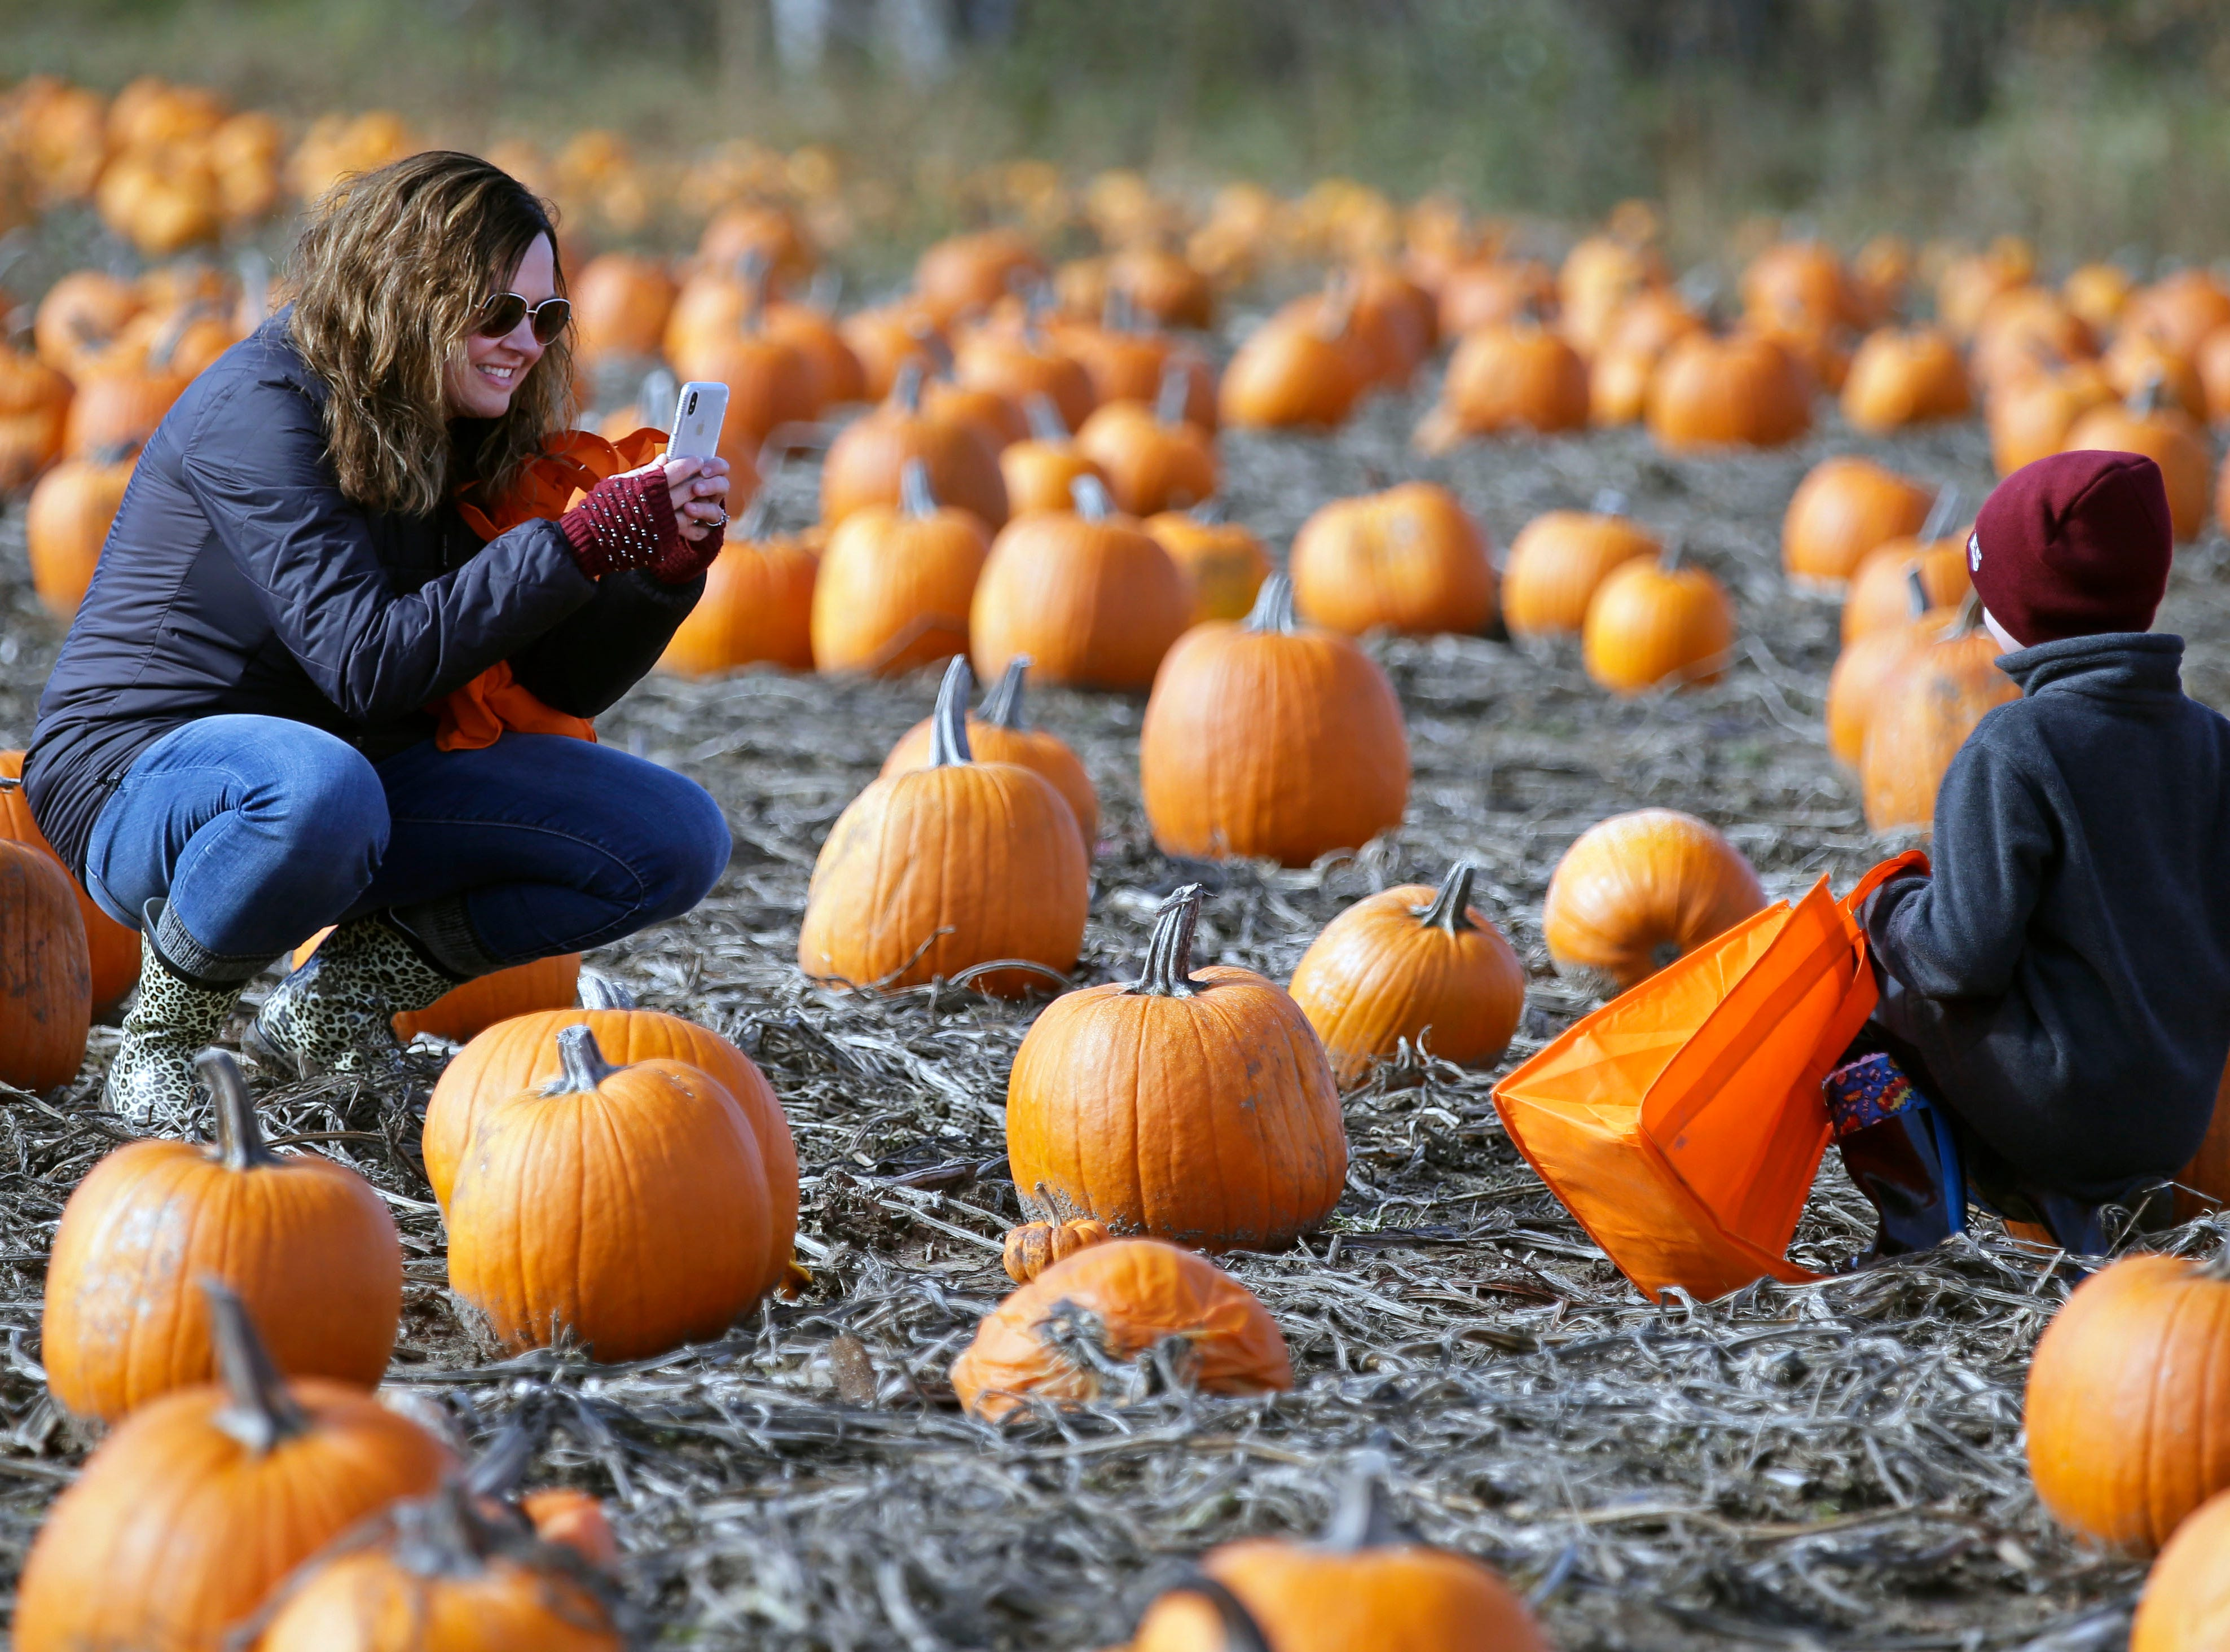 Carrie Mewton of Butte des Morts gets a photo of her son, Henry, as they pick pumpkins Sunday, October 21, 2018, at Cuff Farms in Hortonville, Wis.